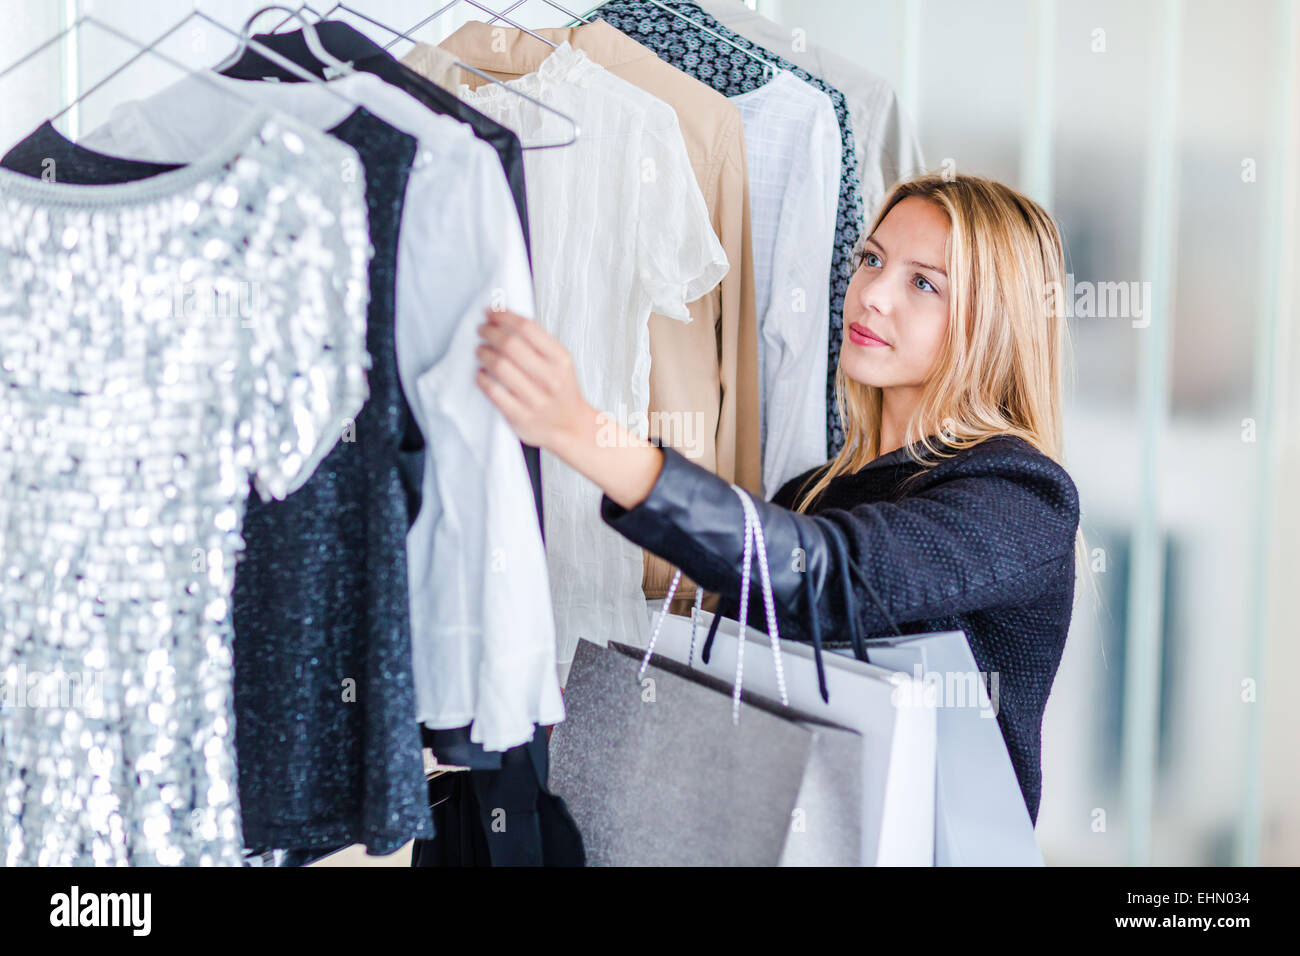 Woman shopping in cloth shop. Photo Stock